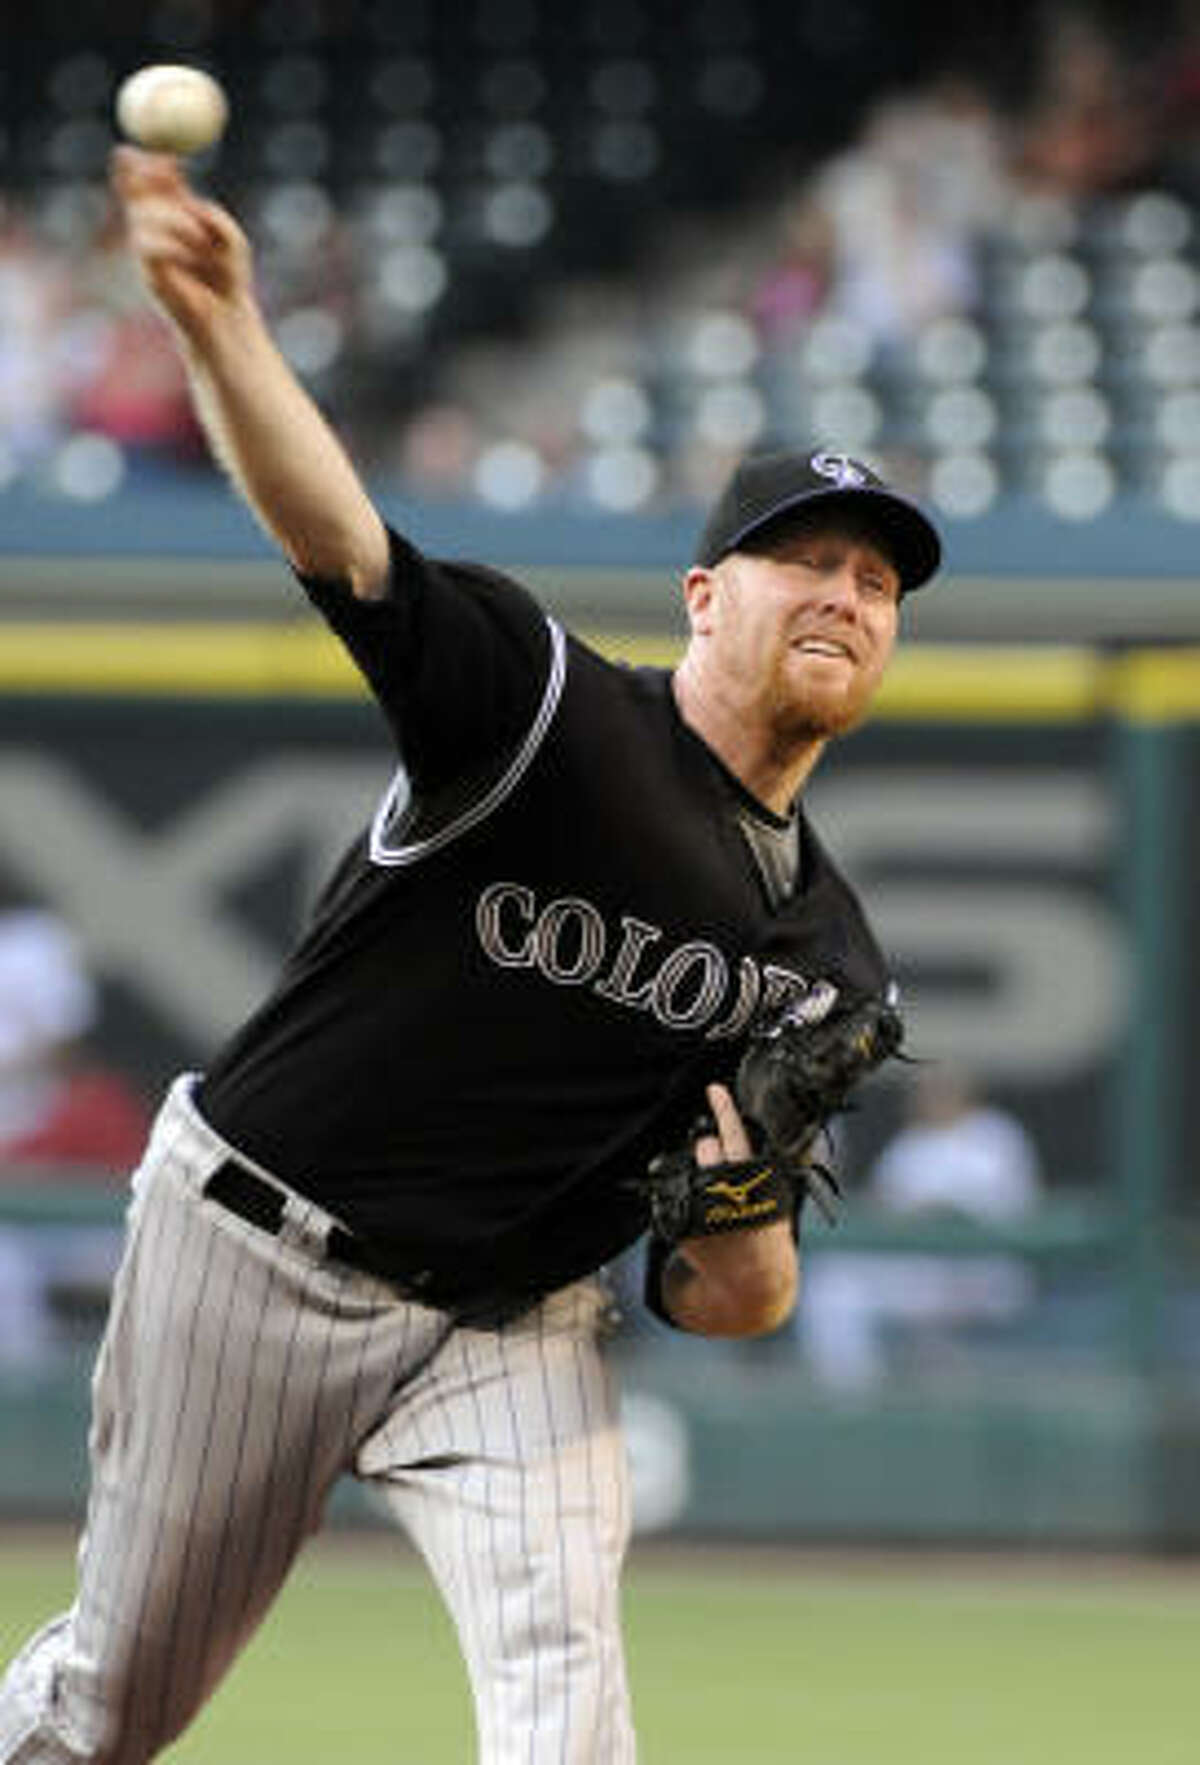 Aaron Cook started for the Colorado Rockies in the series opener.